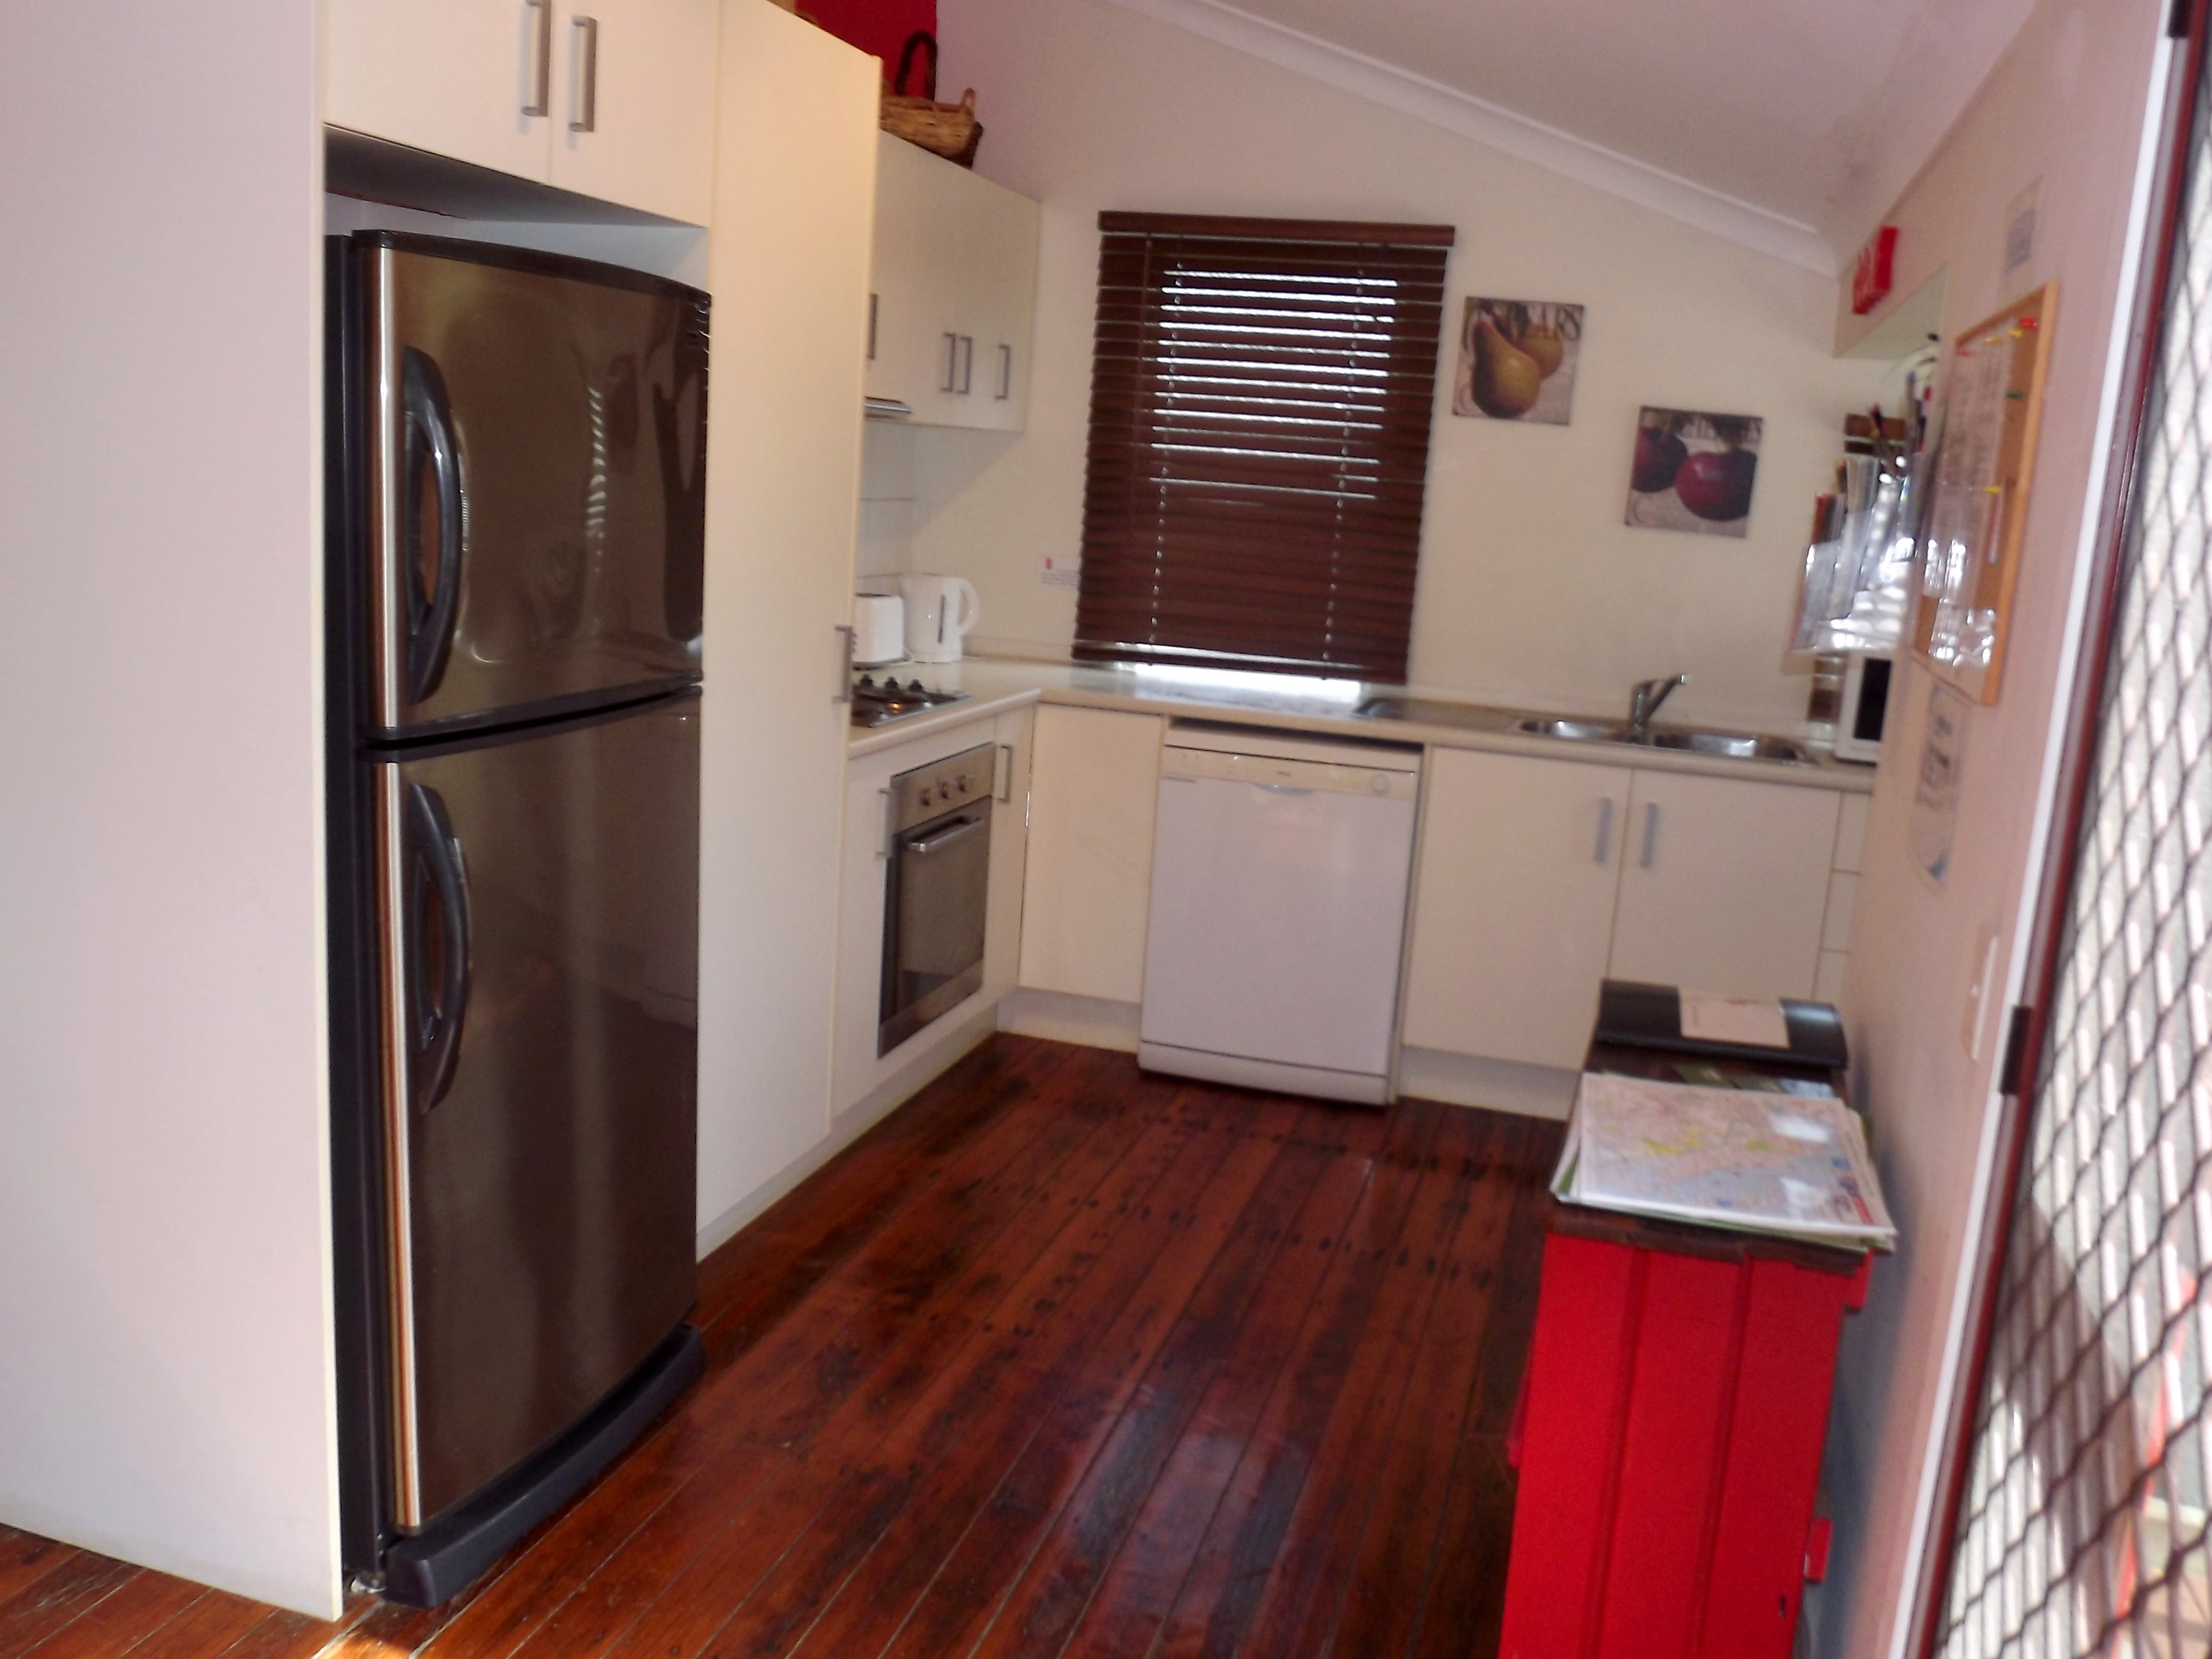 Kitchen close up gallery image